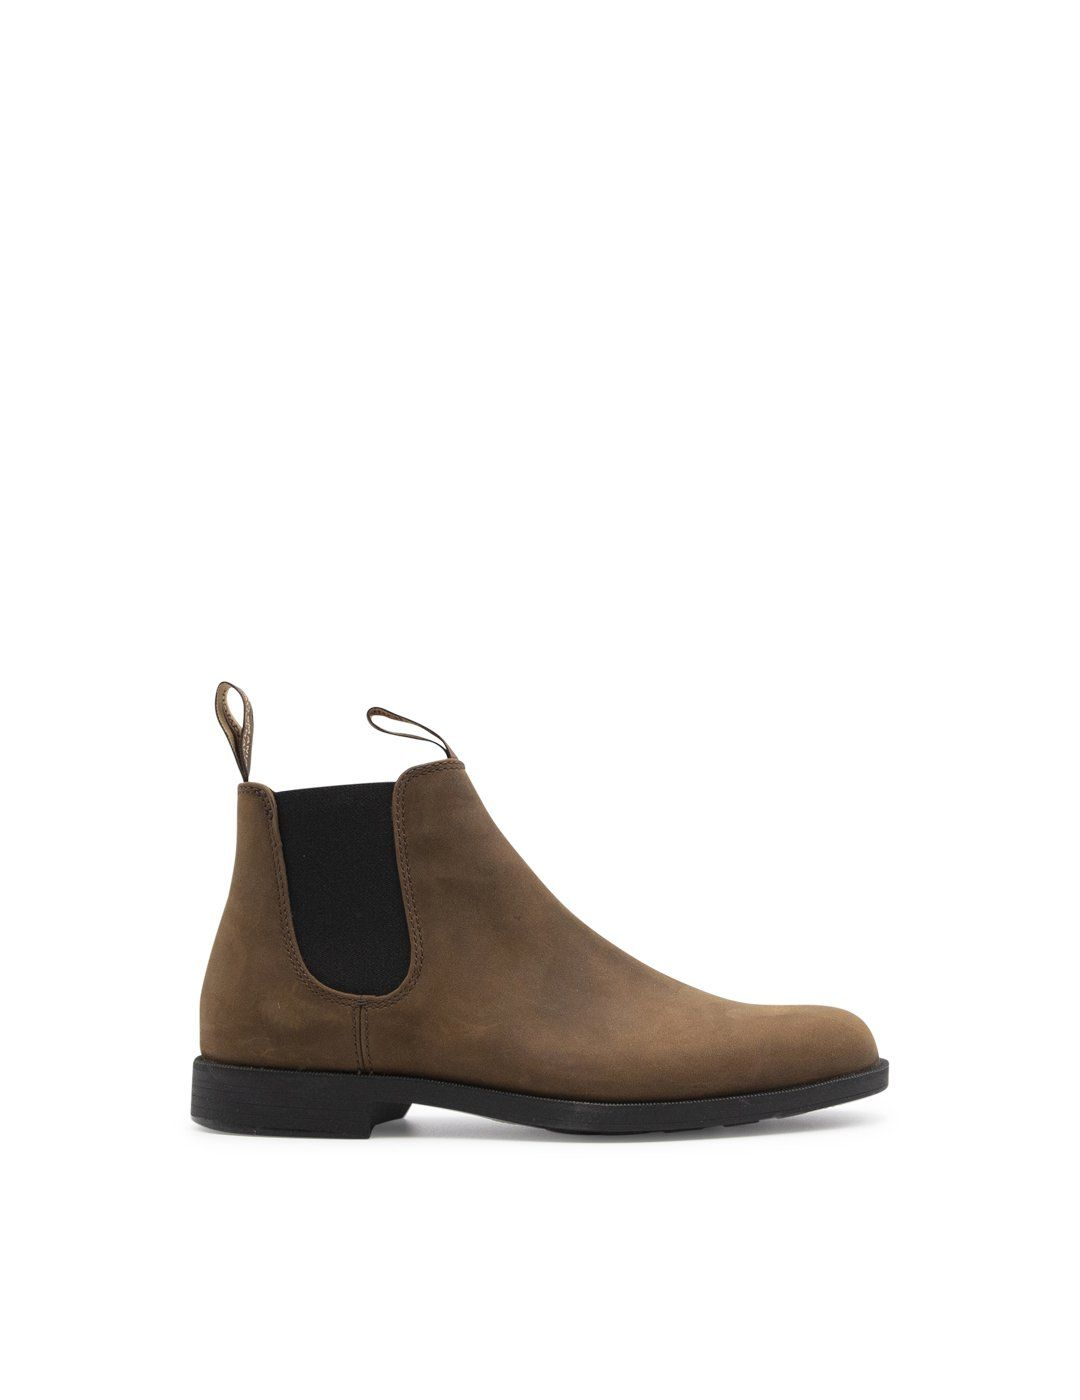 Blundstone BLUNDSTONE MEN'S BROWN LEATHER ANKLE BOOTS